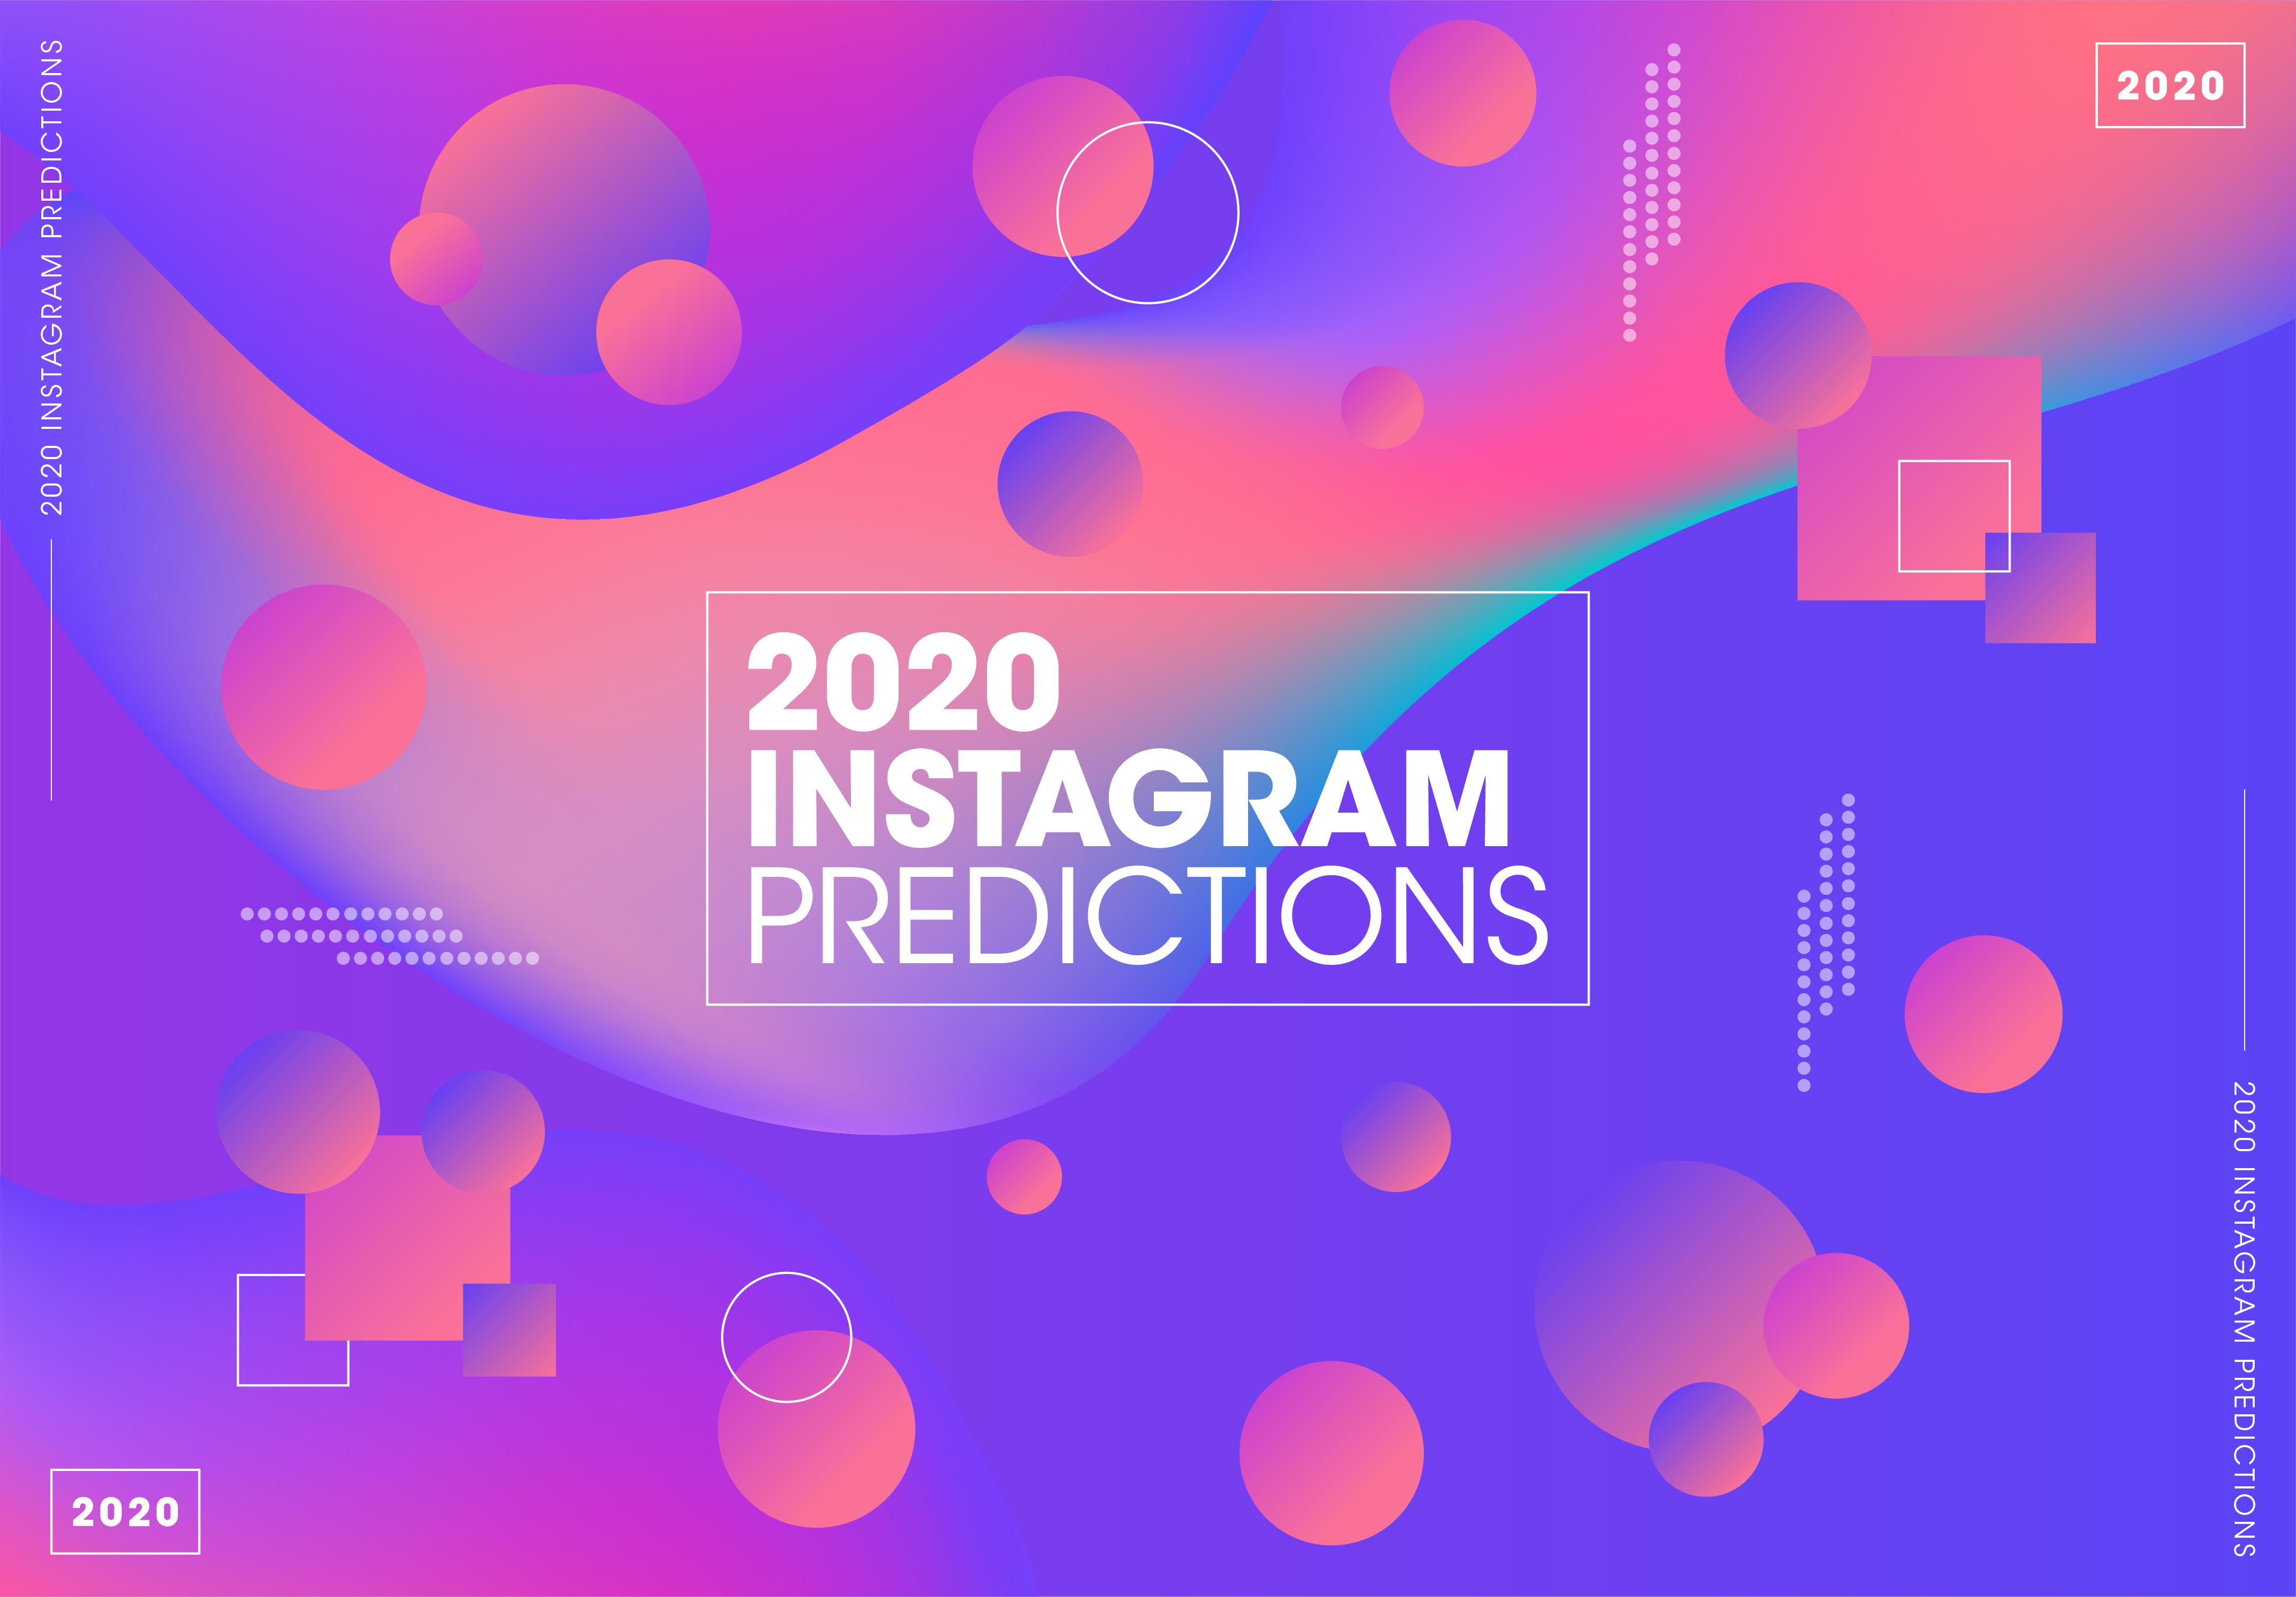 2020 INSTAGRAM PREDICTIONS - News